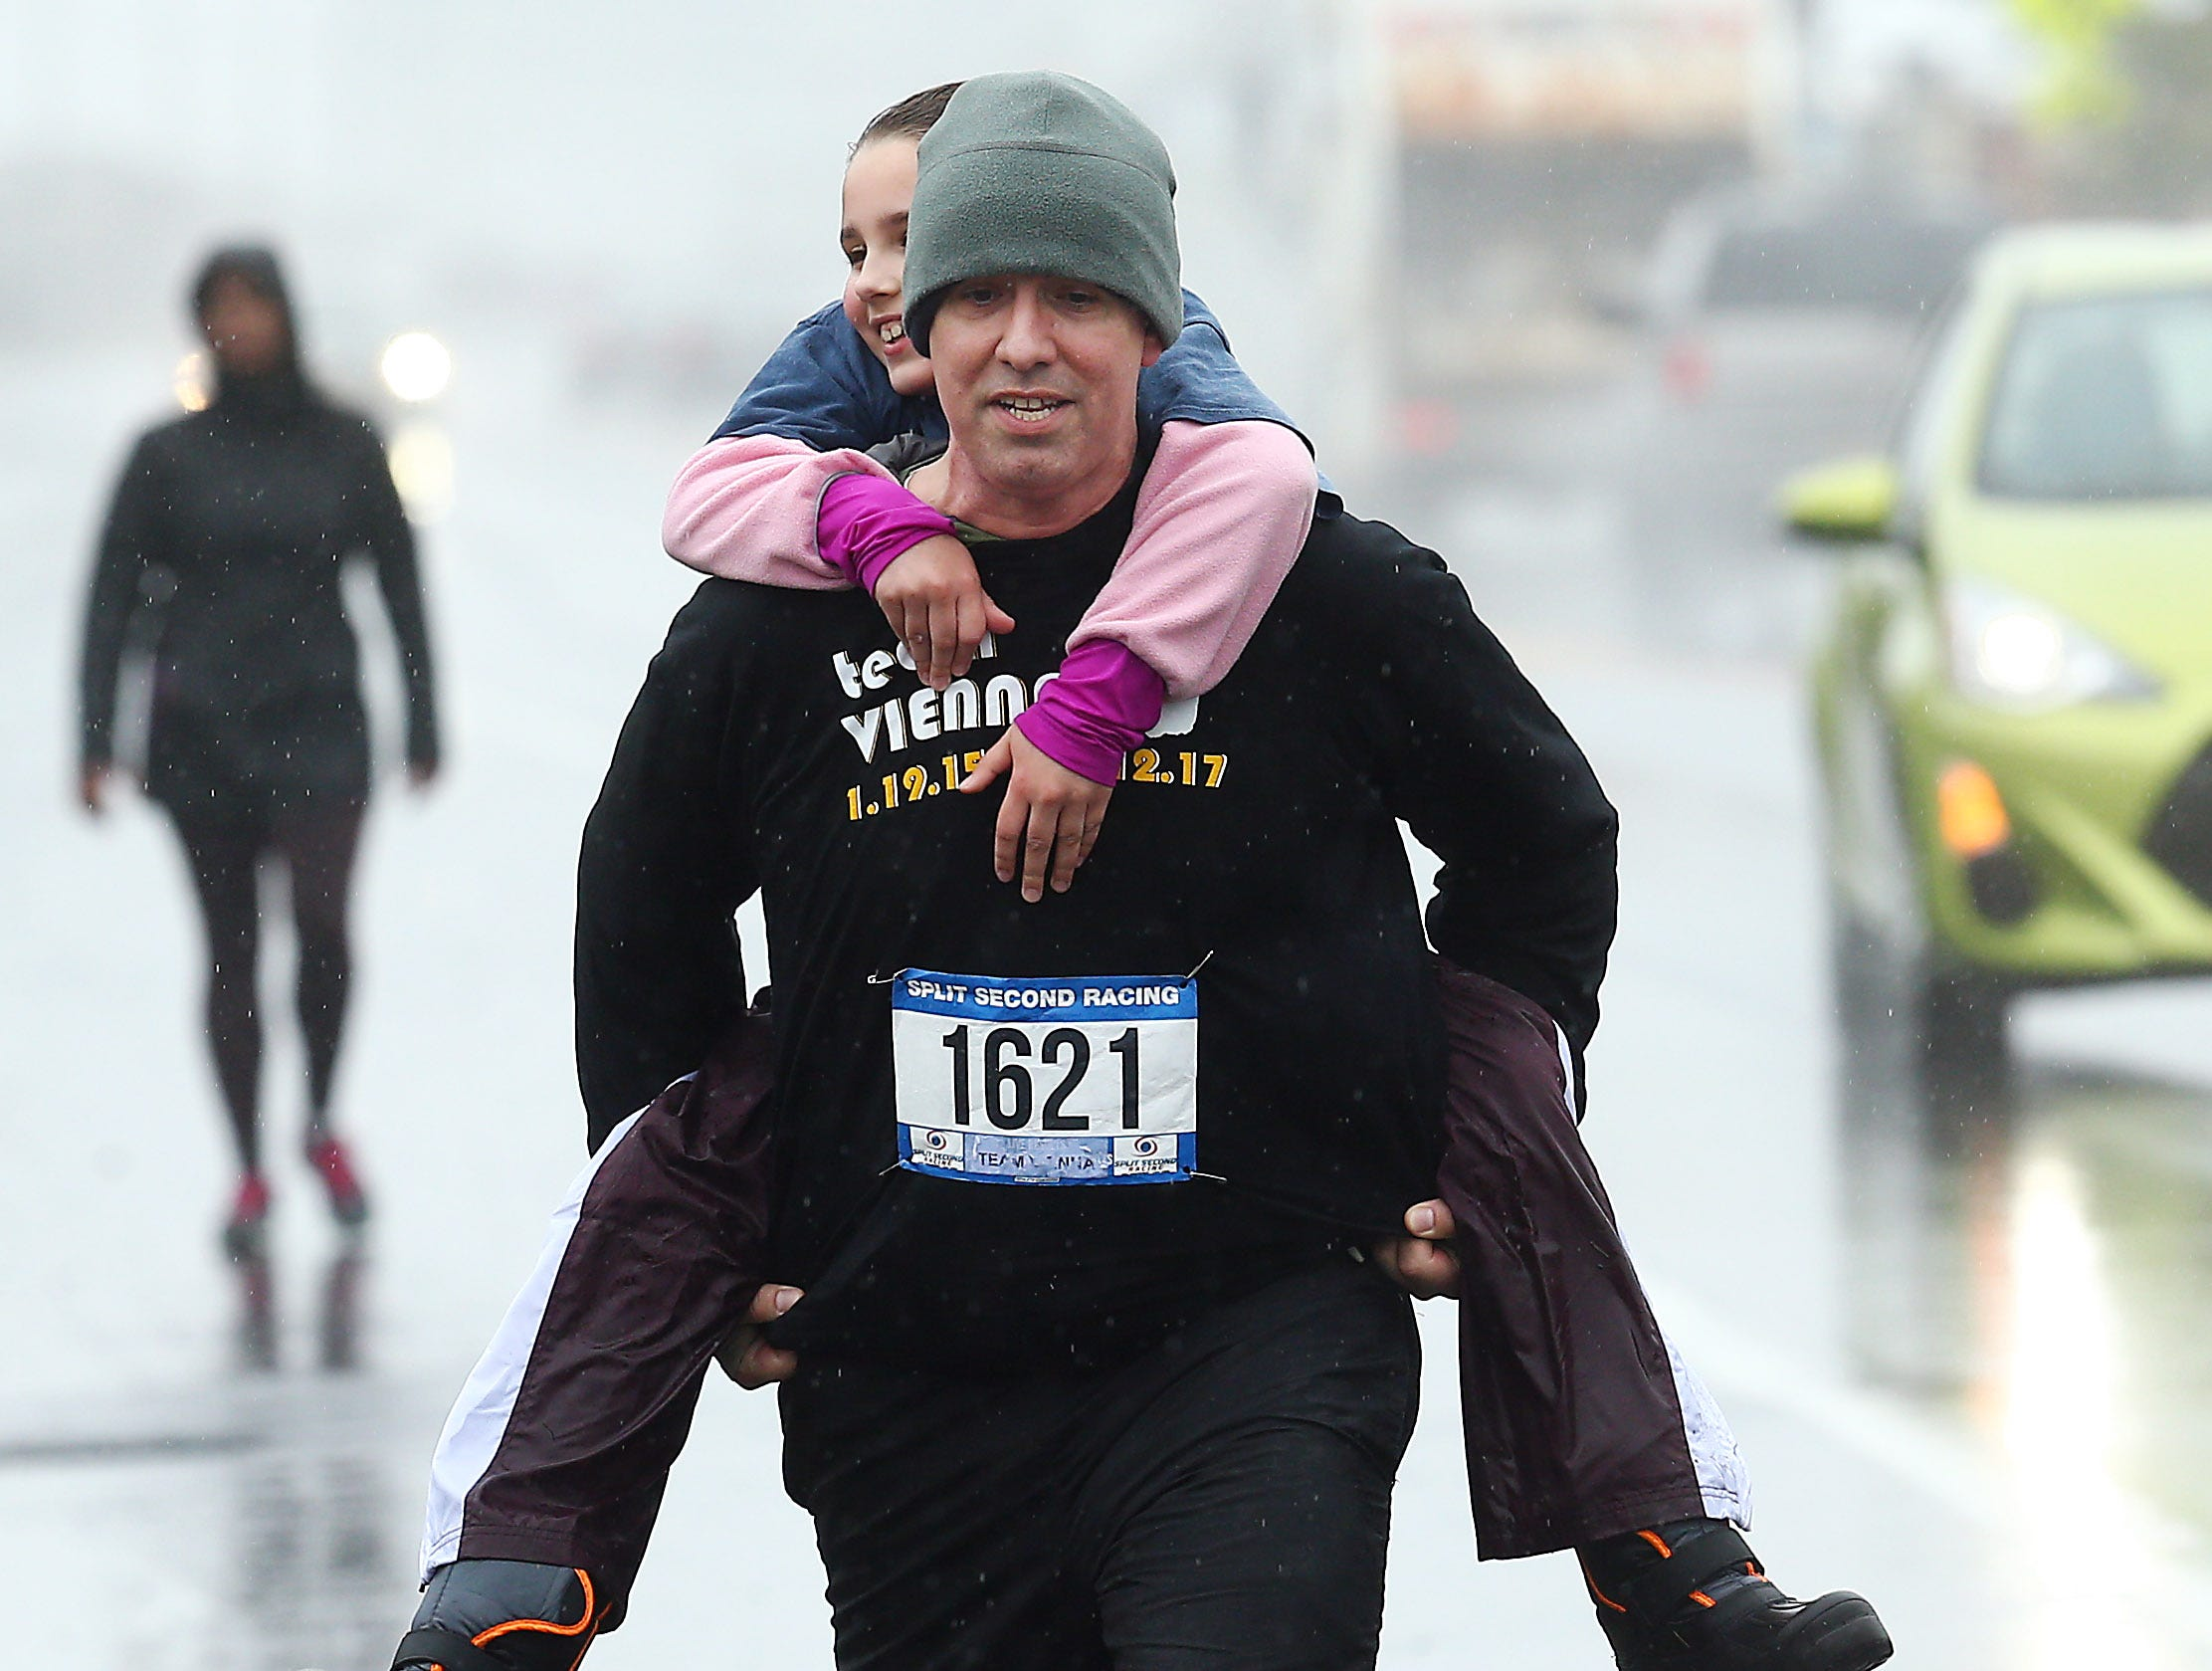 Michael Savino runs with his daughter on his back, running for Team Vienna for SUDC Awareness joined Run With the Royals 5K in Sea Bright to honor Vienna Savino to raise awareness for Sudden Unexplained Death in Childhood, a tragic and little known cause of death in children. May 19, 2018. Sea Bright, NJ